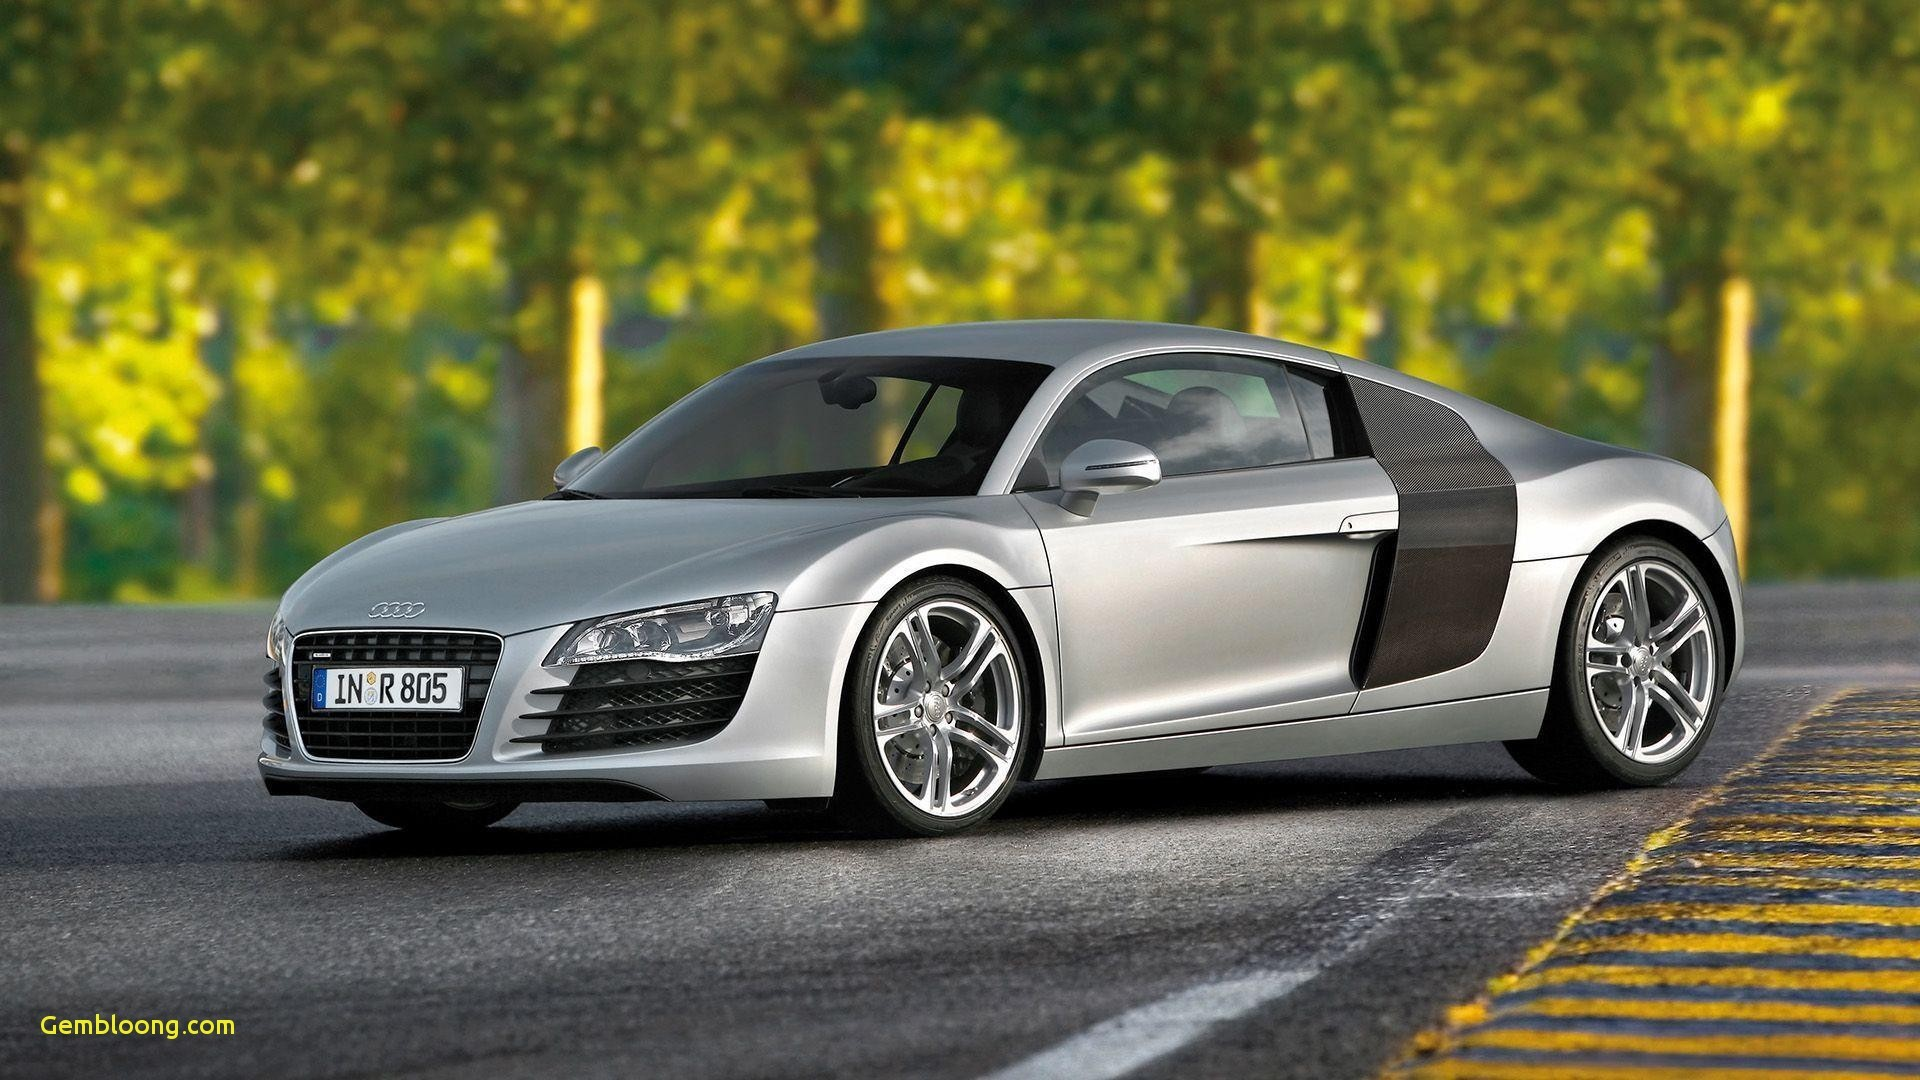 Android Hd Car Wallpapers For Mobile Picture Idokeren